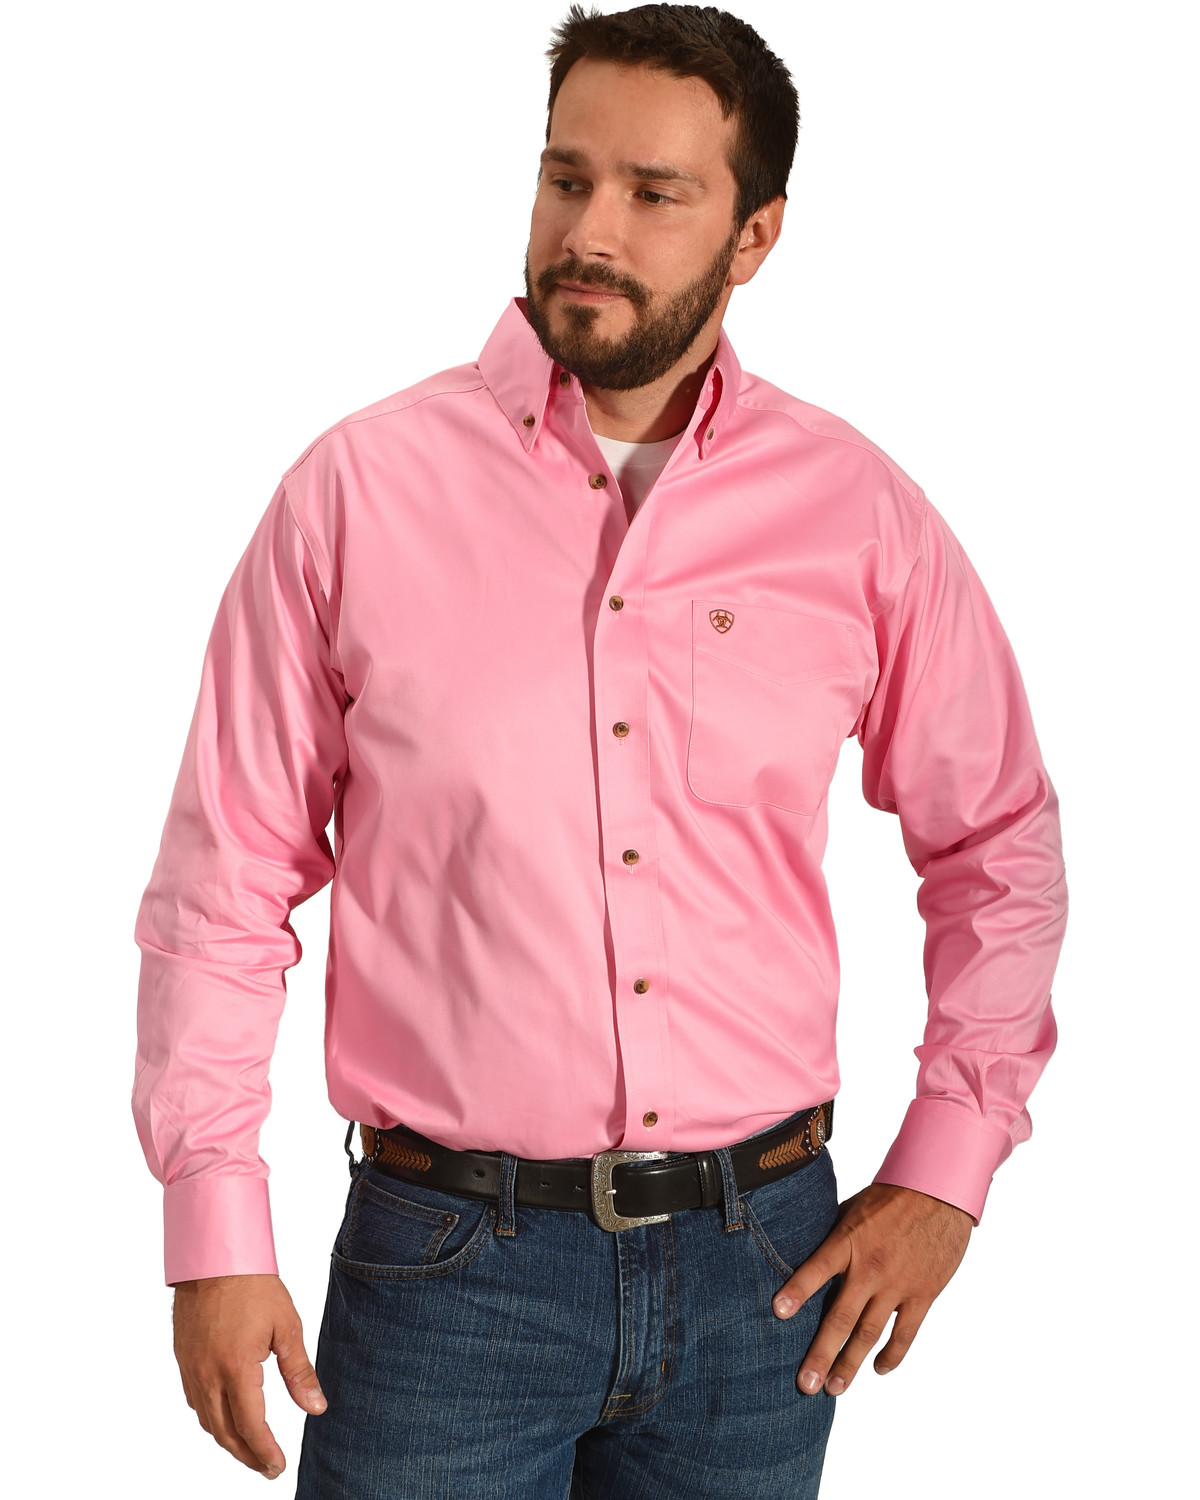 e3ead82e Zoomed Image Ariat Men's Pink Classic Fit Solid Twill Shirt, Pink, ...